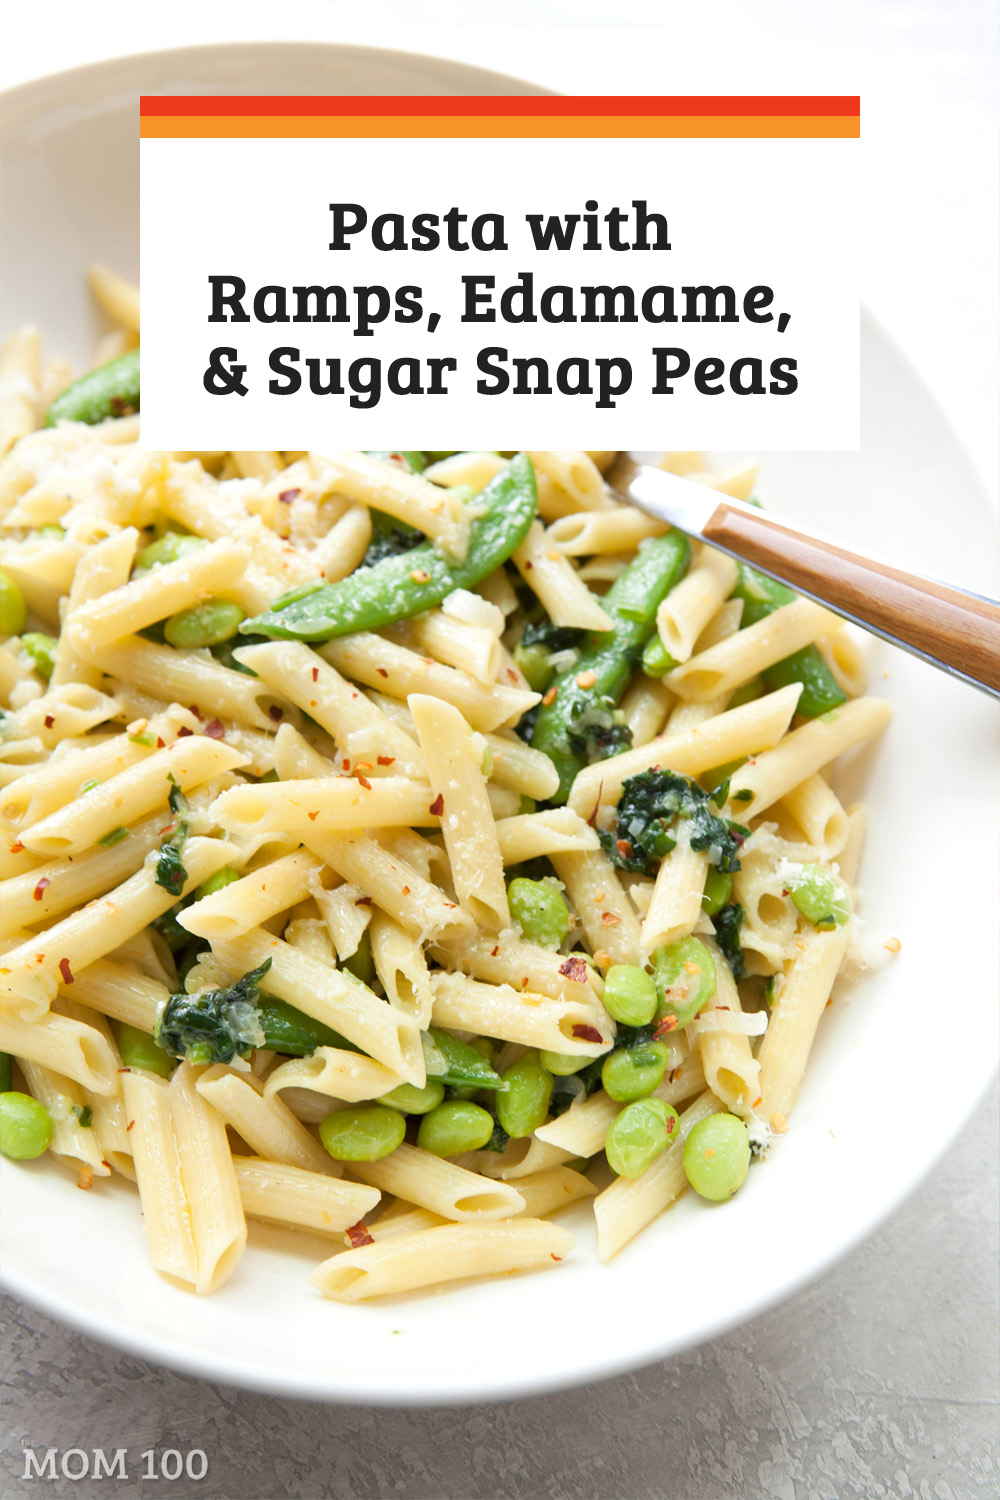 Pasta with Ramps, Edamame, and Sugar Snap Peas: A beautiful, elegant and easy springtime pasta recipe, loaded with ramps and vegetables.